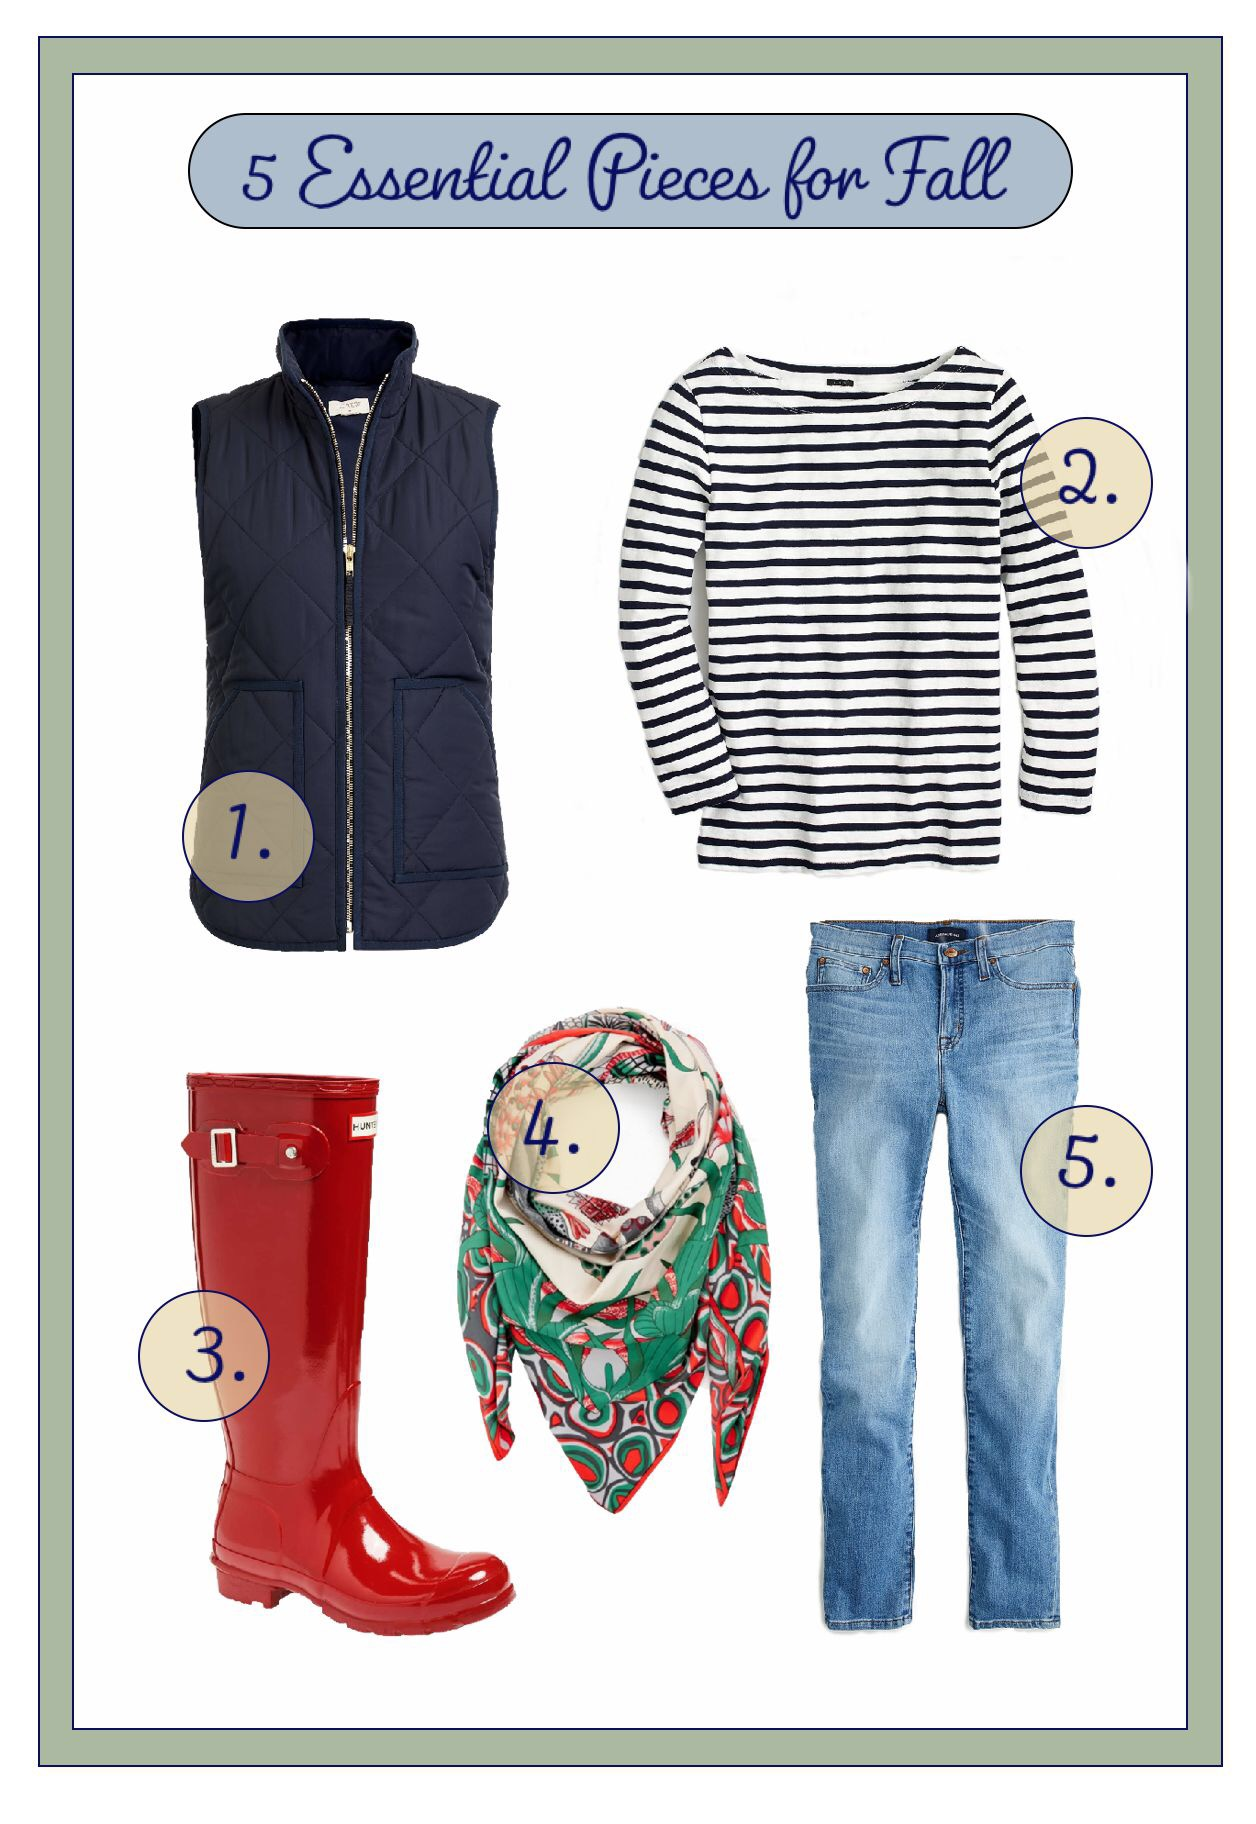 Five Essential Pieces for Fall